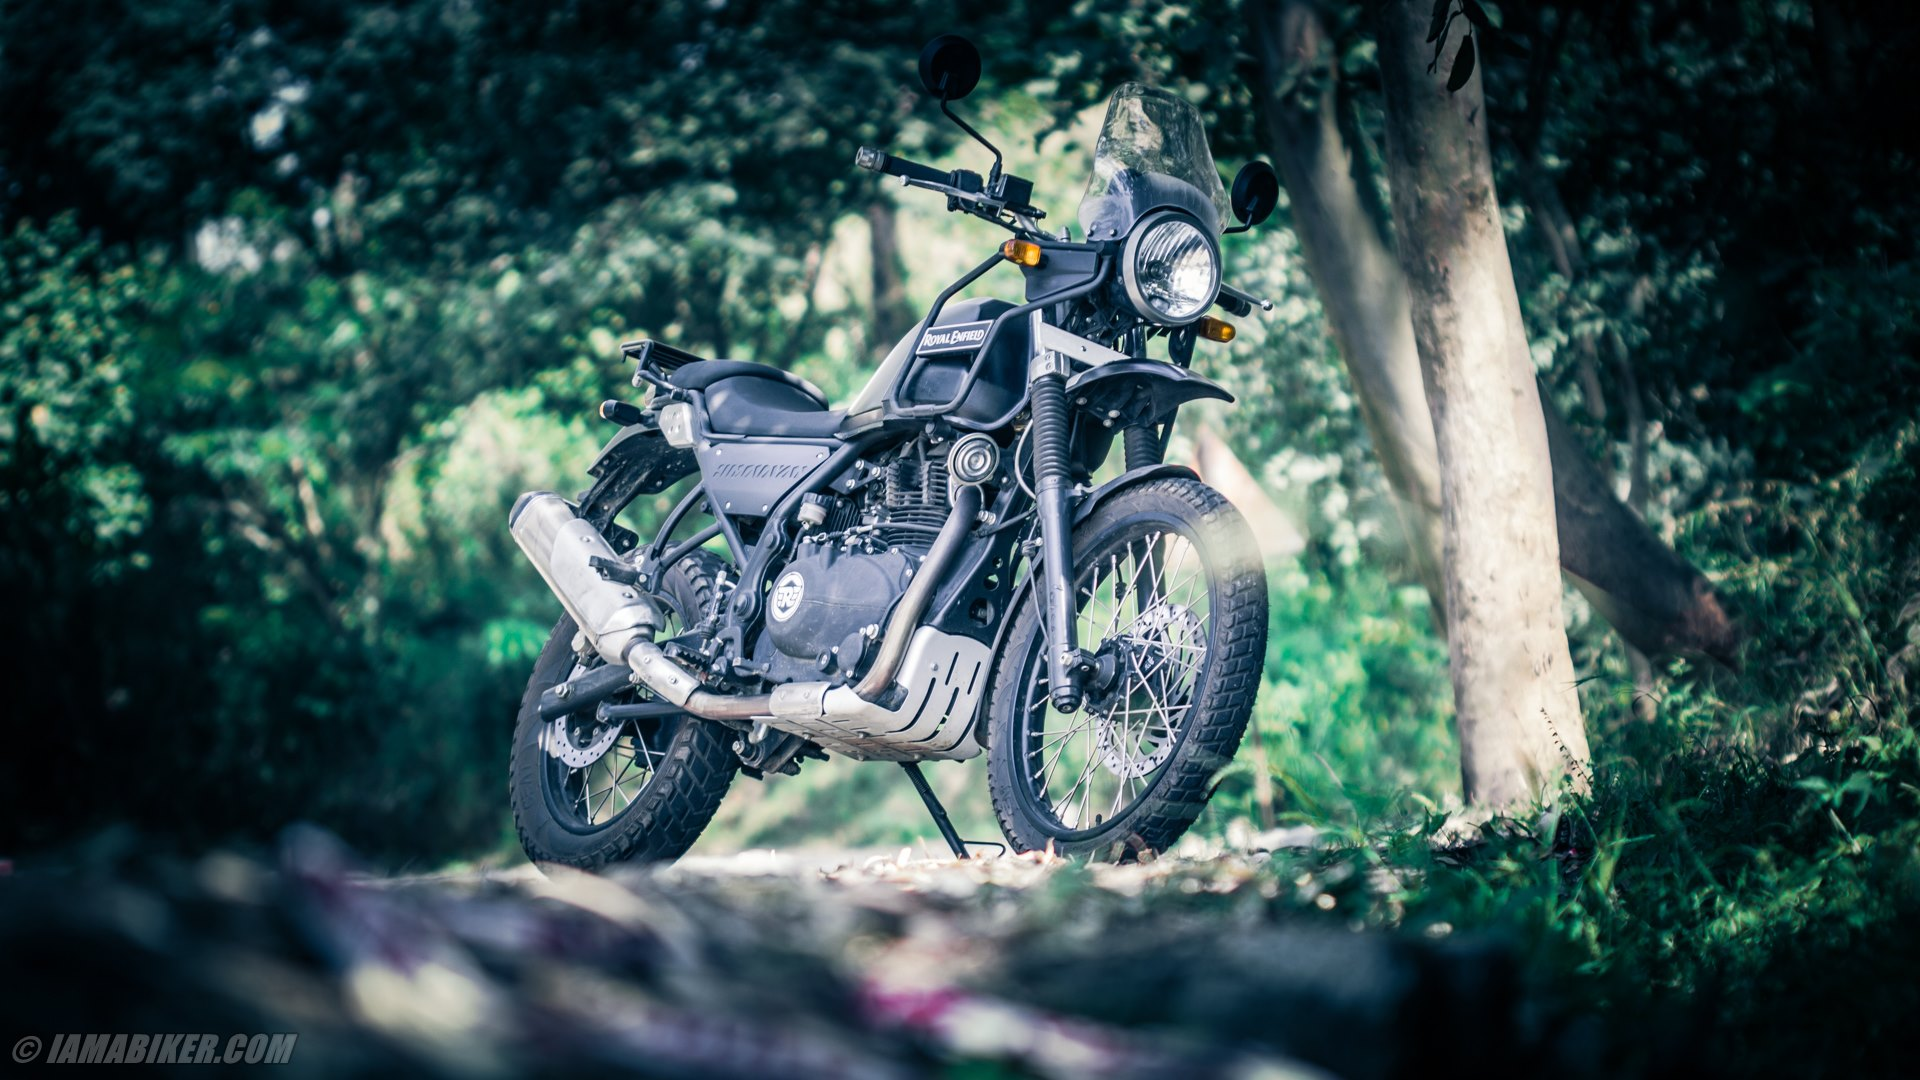 Hd wallpaper royal enfield - Royal Enfield Himalayan Hd Wallpapers